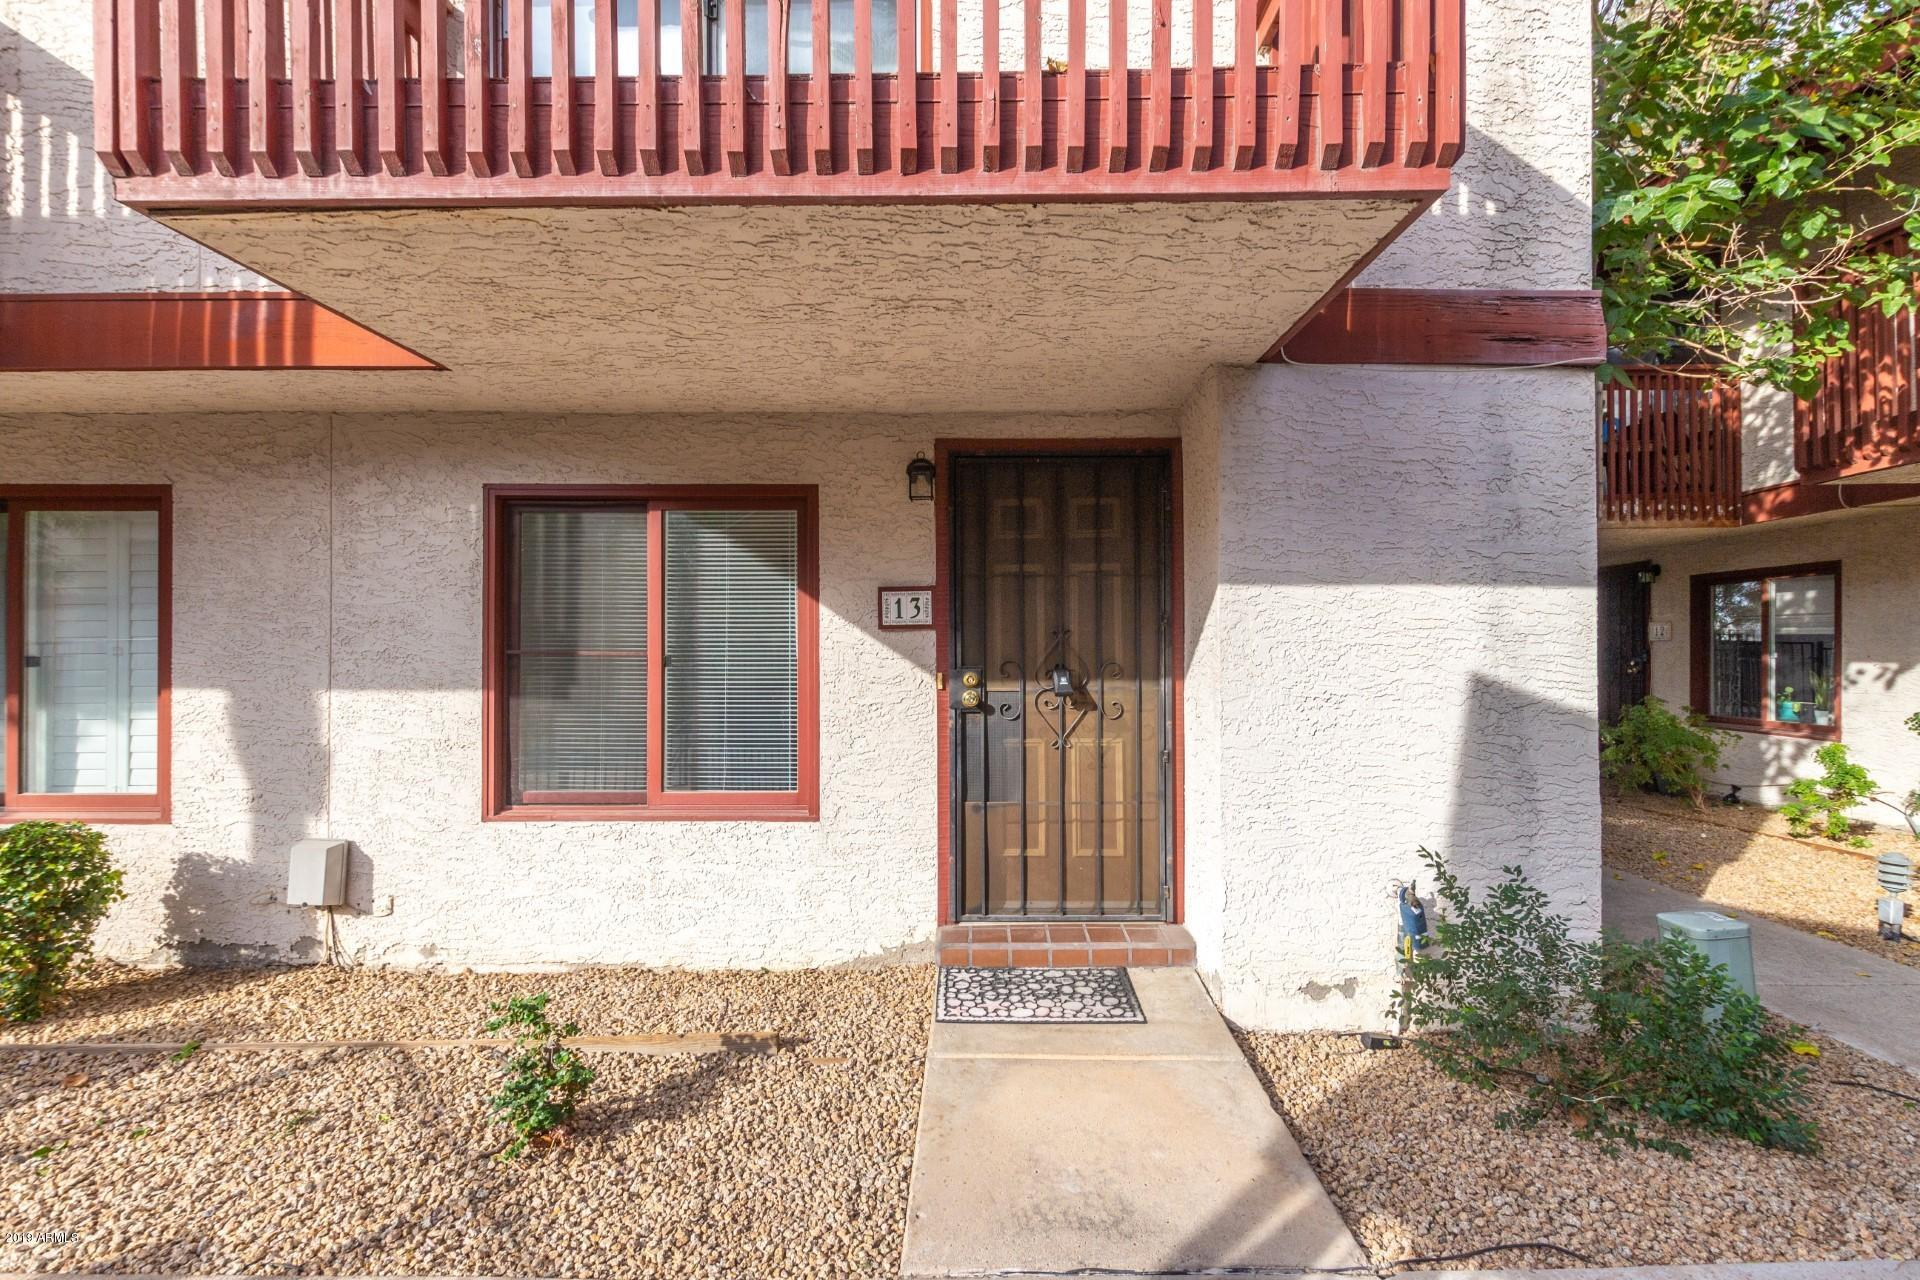 Photo of 1402 E Osborn Road #13, Phoenix, AZ 85014